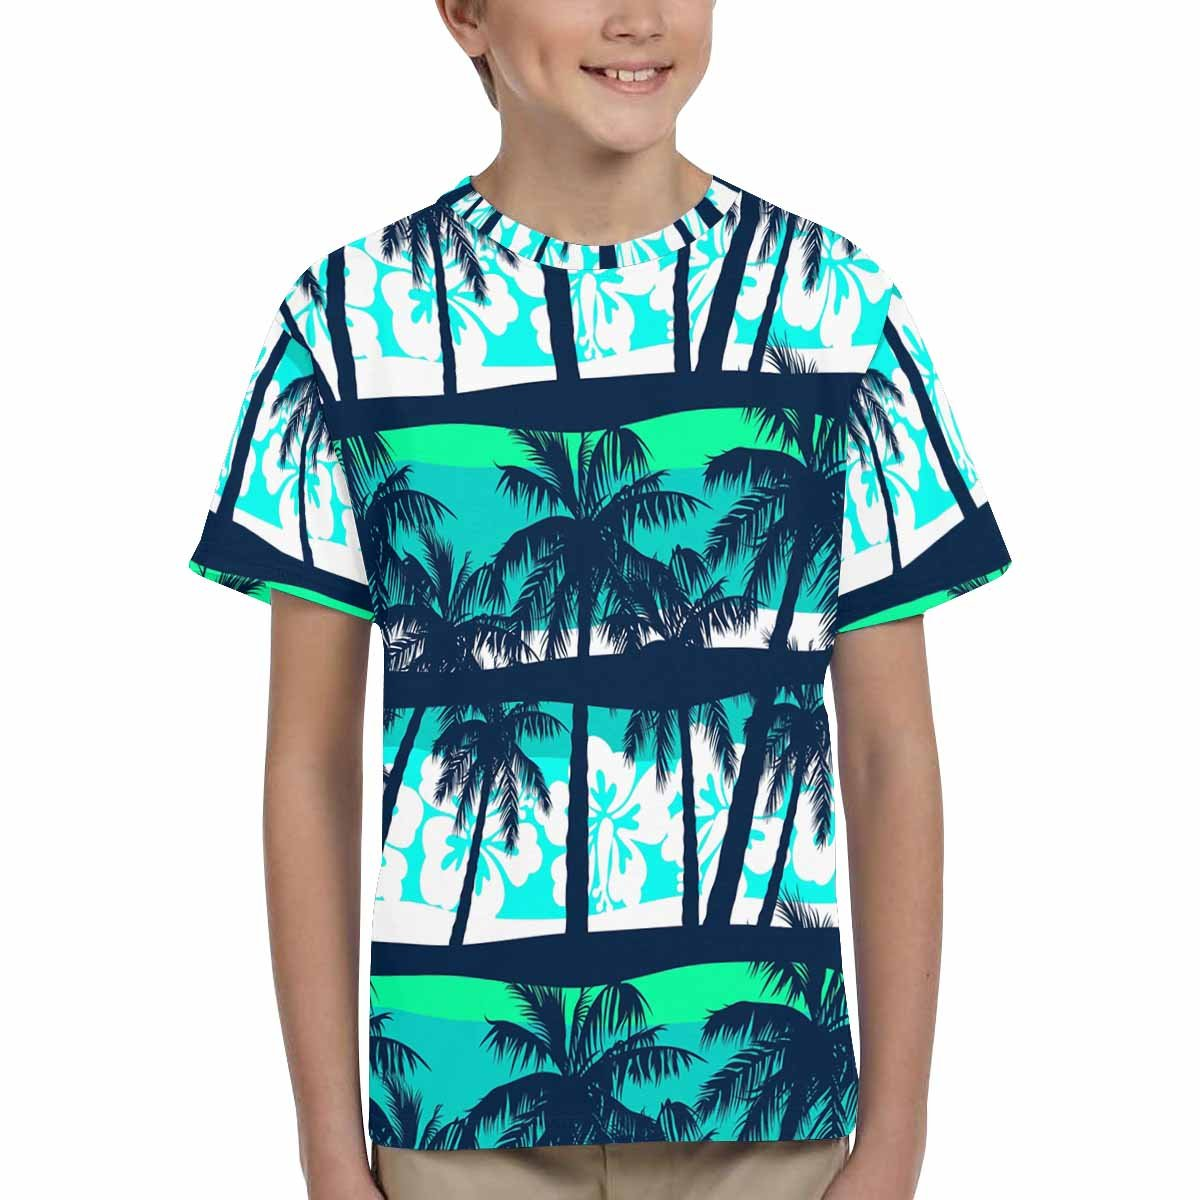 INTERESTPRINT Youth Crew Neck T-Shirt Tropical Frangipani with Palms XS-XL